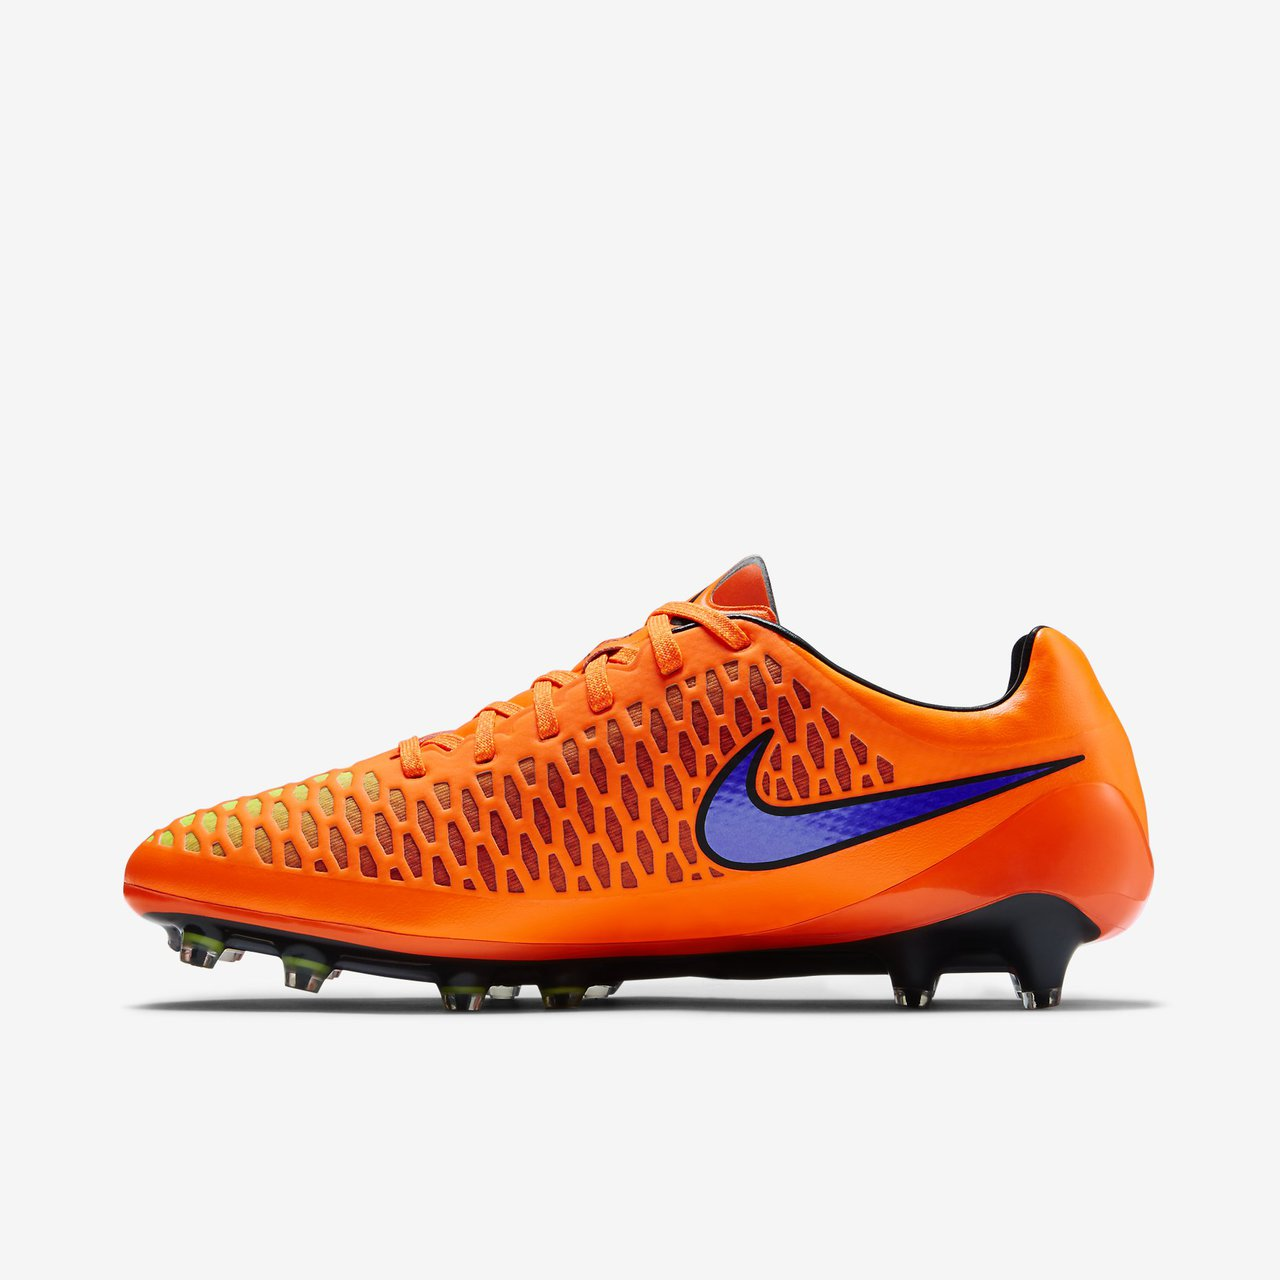 bd97466531a0 ... Click to enlarge image nike-magista-opus-fg-boots-intense- ...